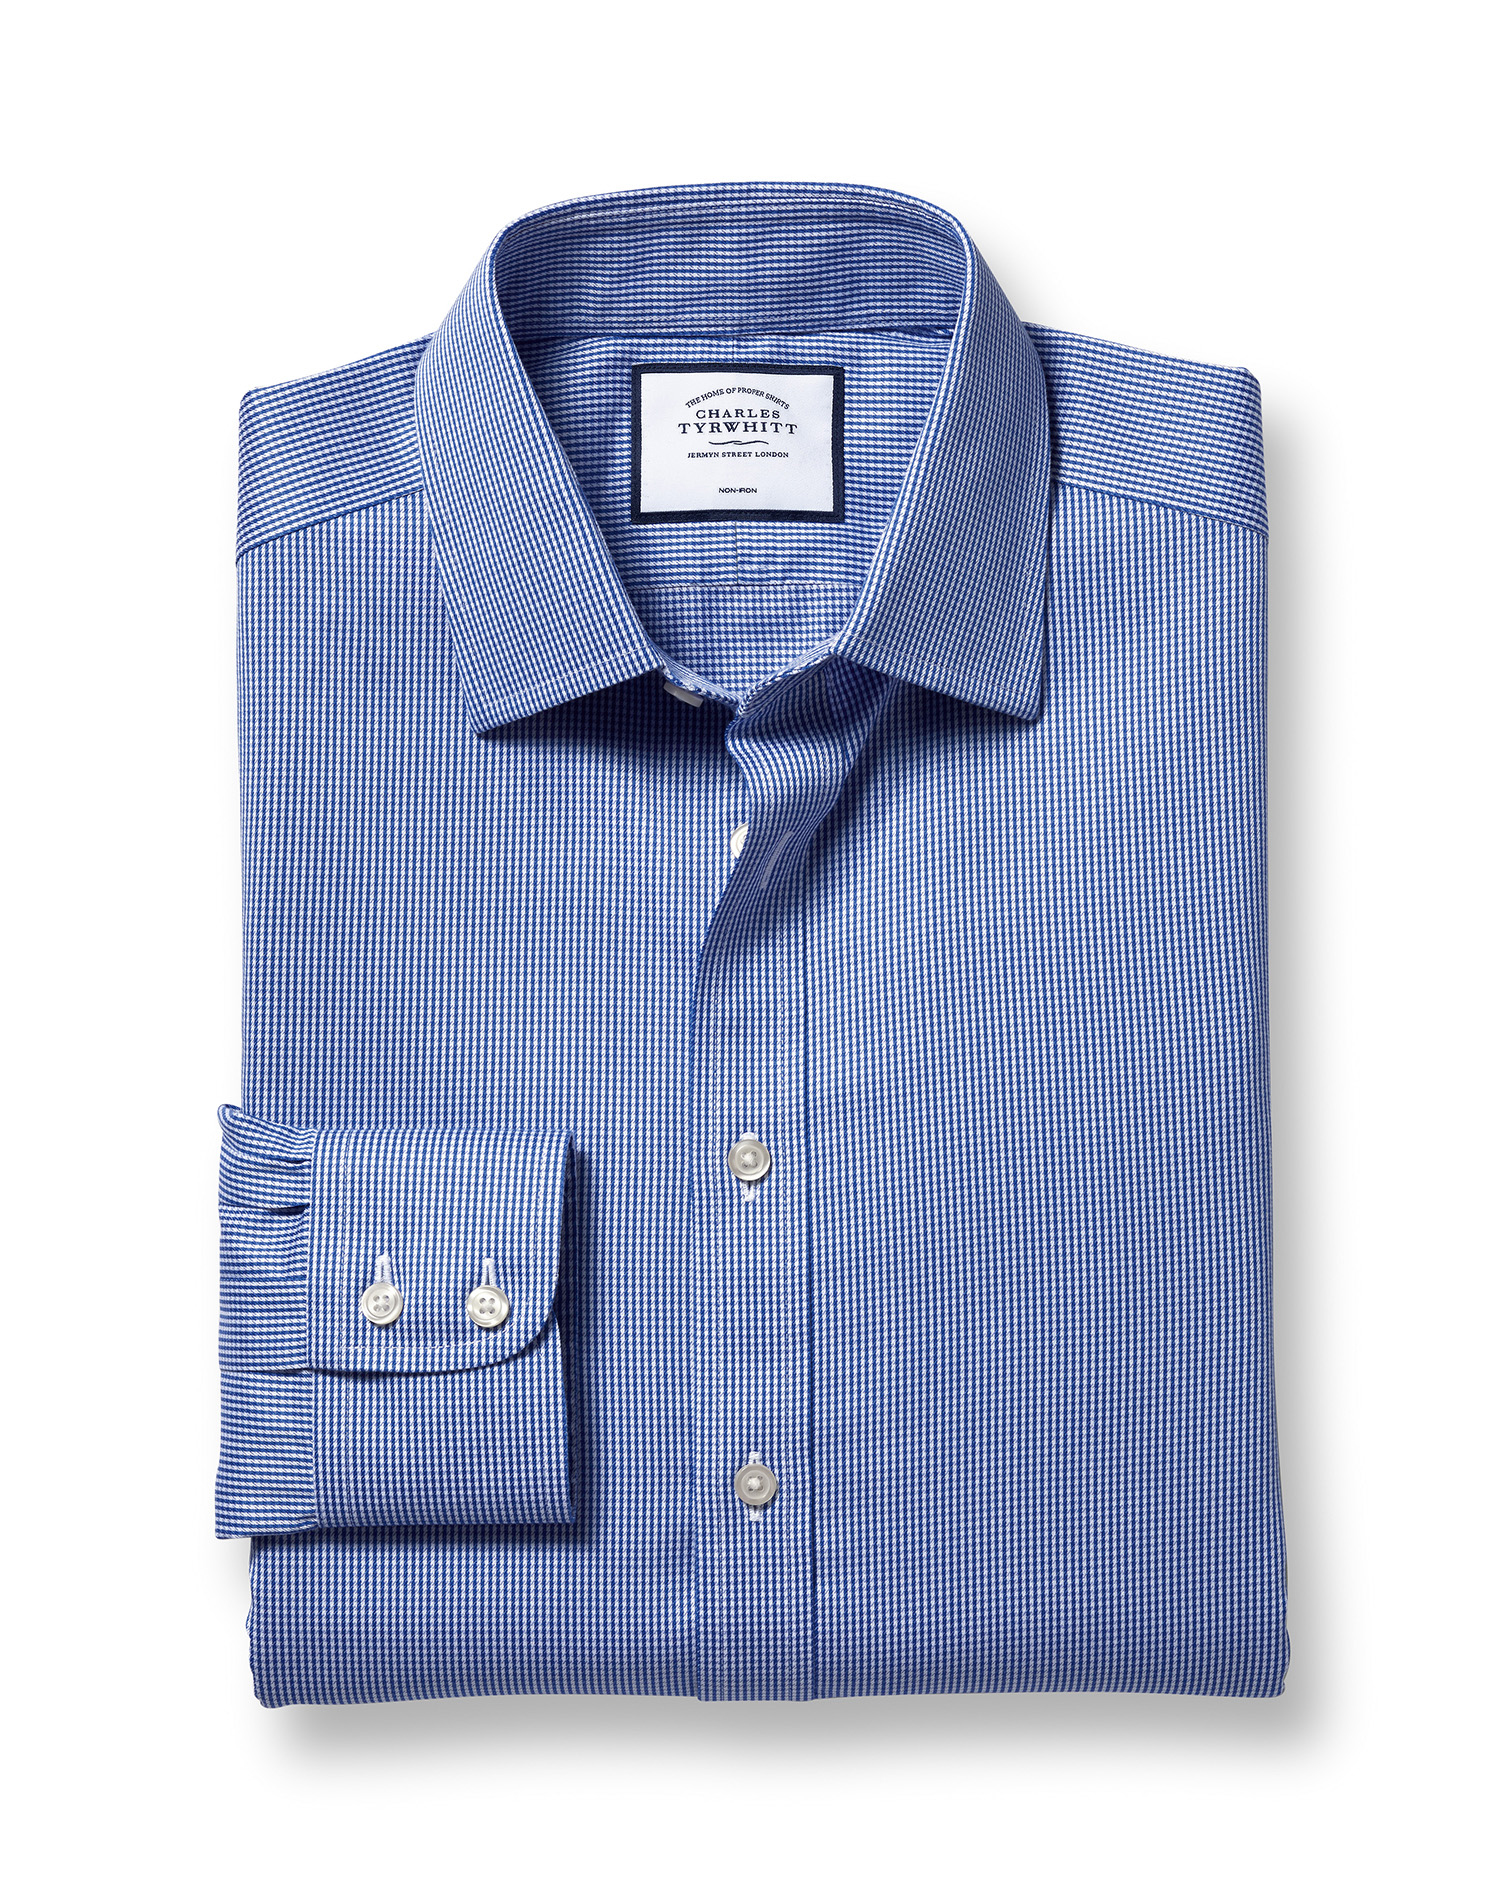 Classic Fit Non-Iron Puppytooth Royal Blue Cotton Formal Shirt Double Cuff Size 18/37 by Charles Tyr